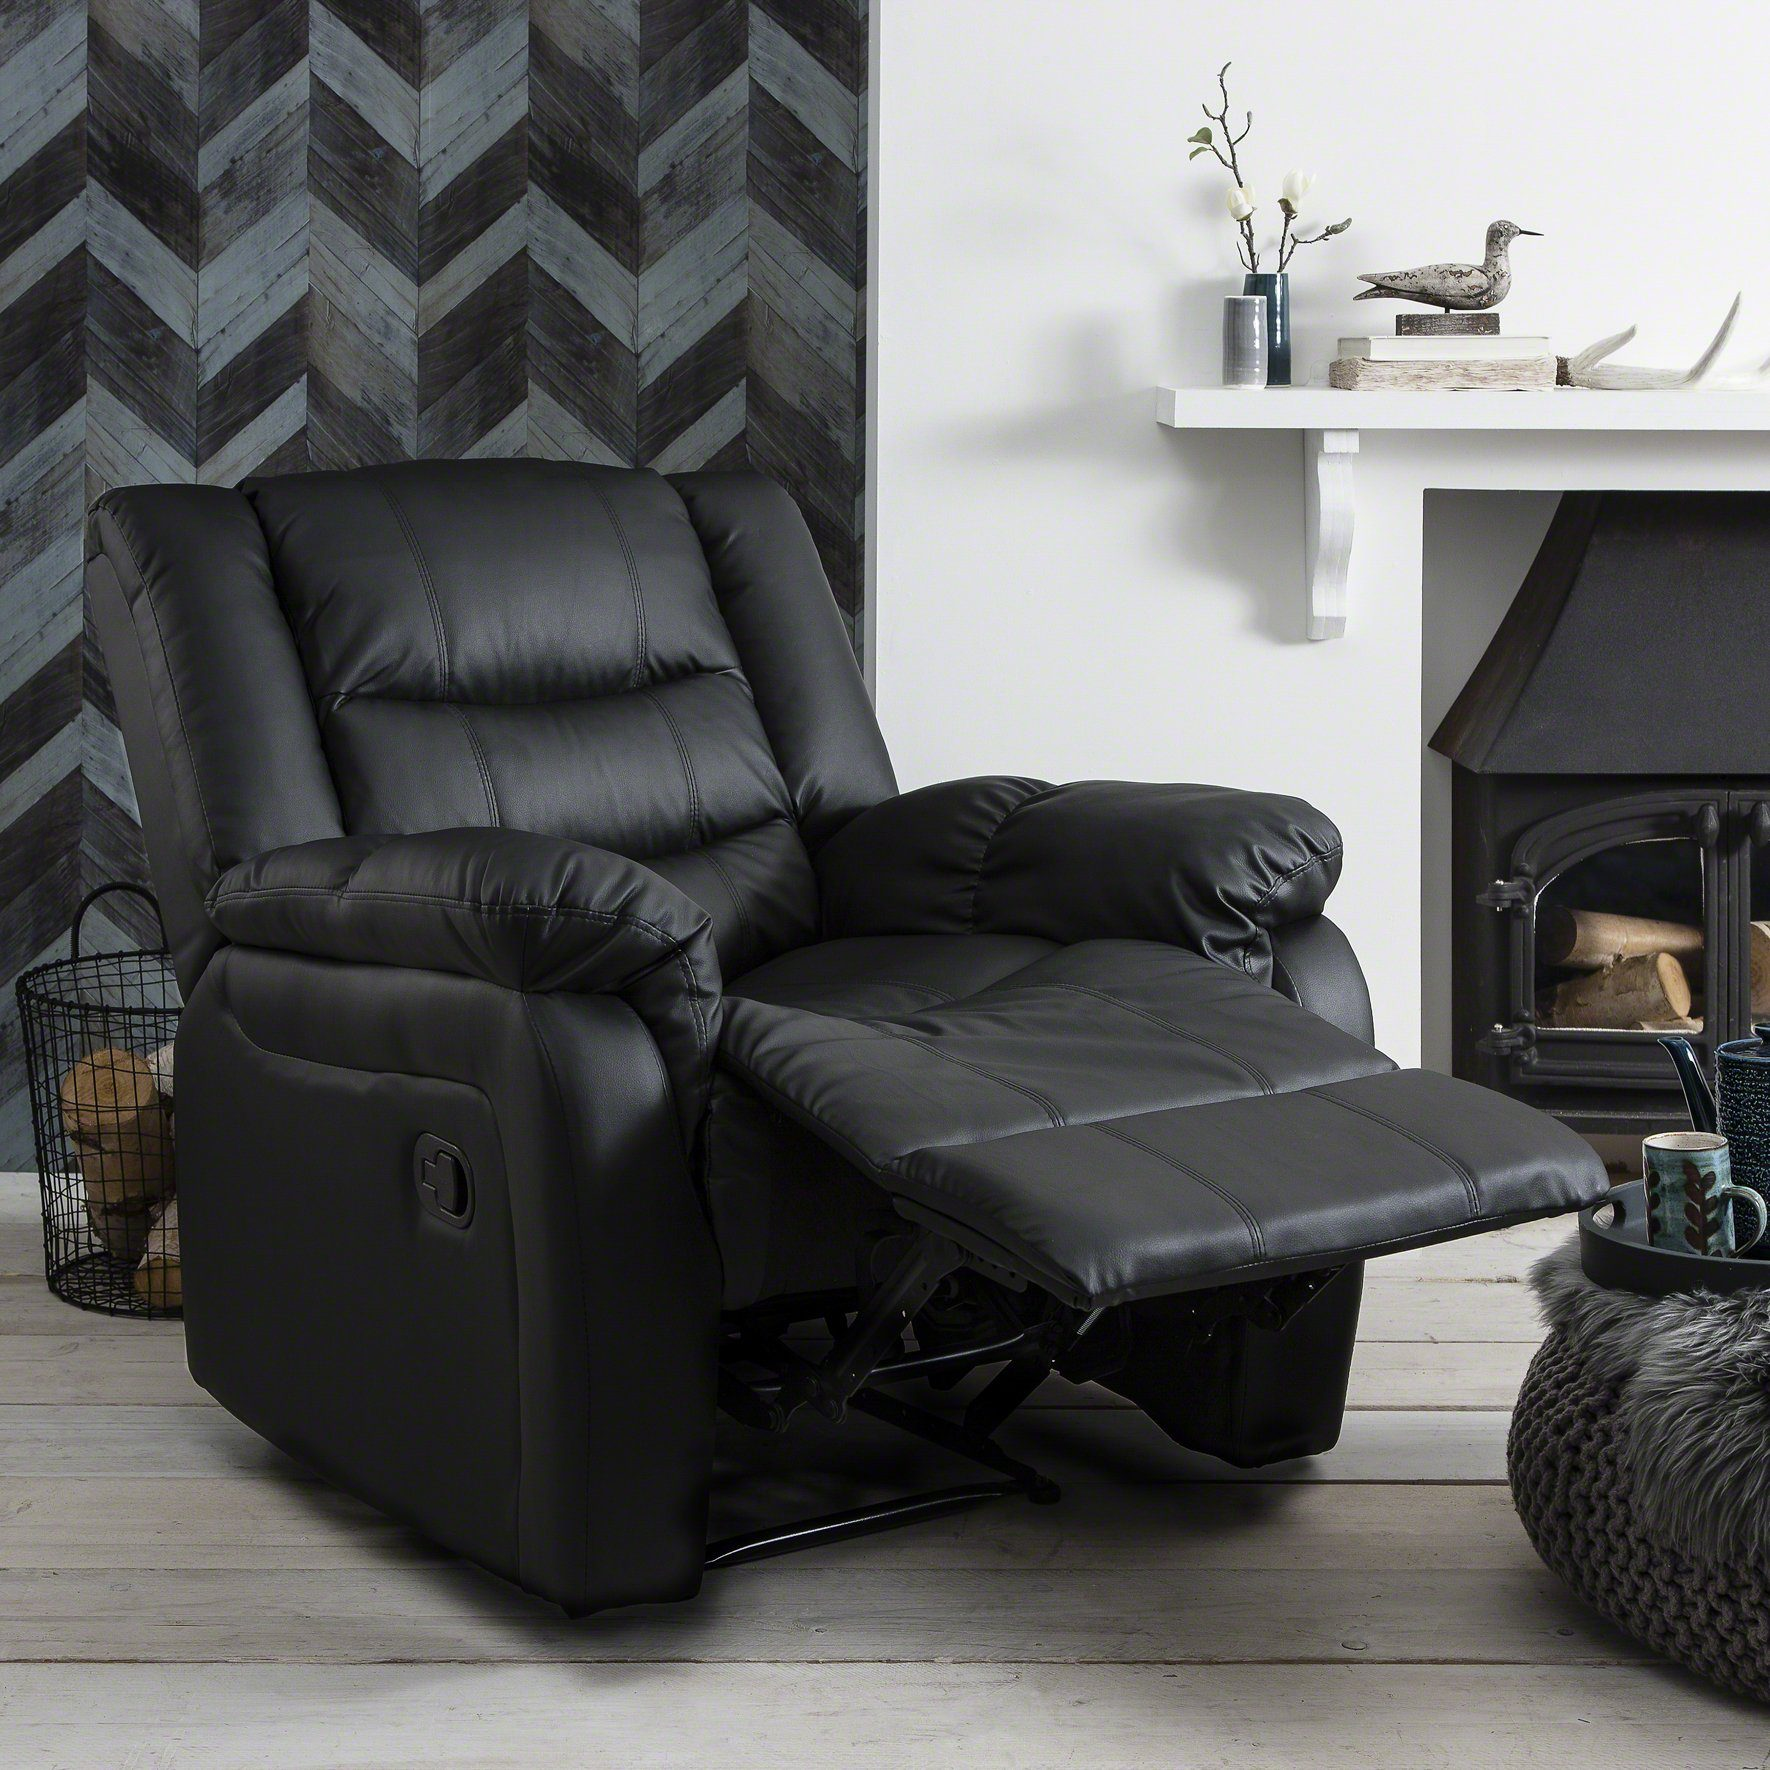 Awesome Recliner Armchair Black Bonded Leather Pdpeps Interior Chair Design Pdpepsorg